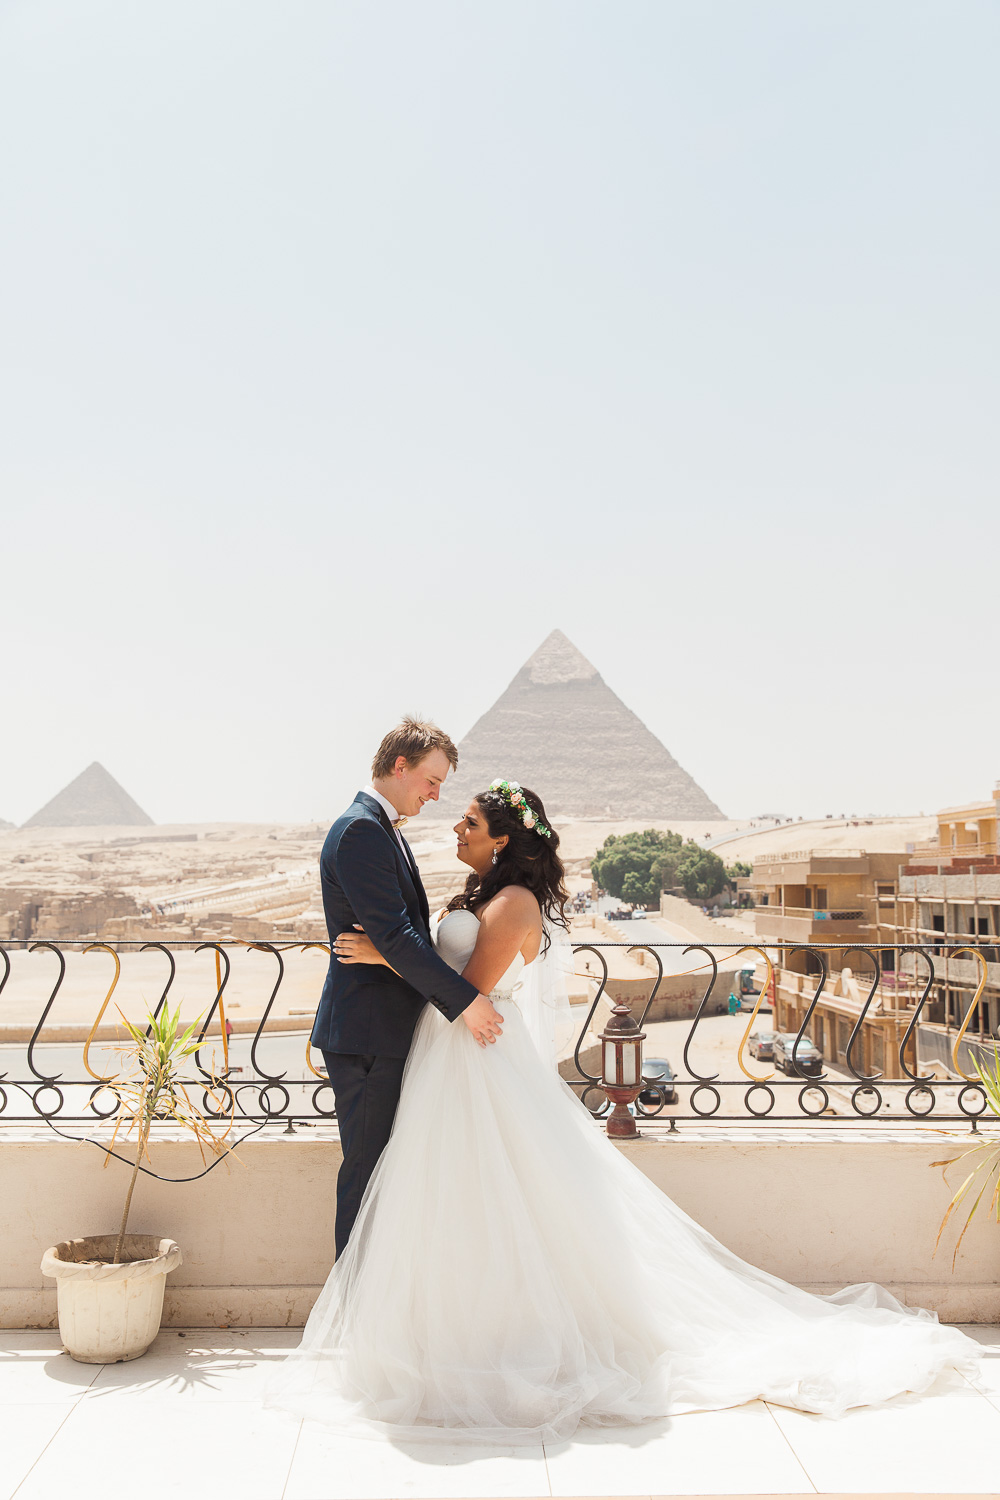 Bride and groom standing in front of the Pyramids of Giza at their destination wedding in Egypt